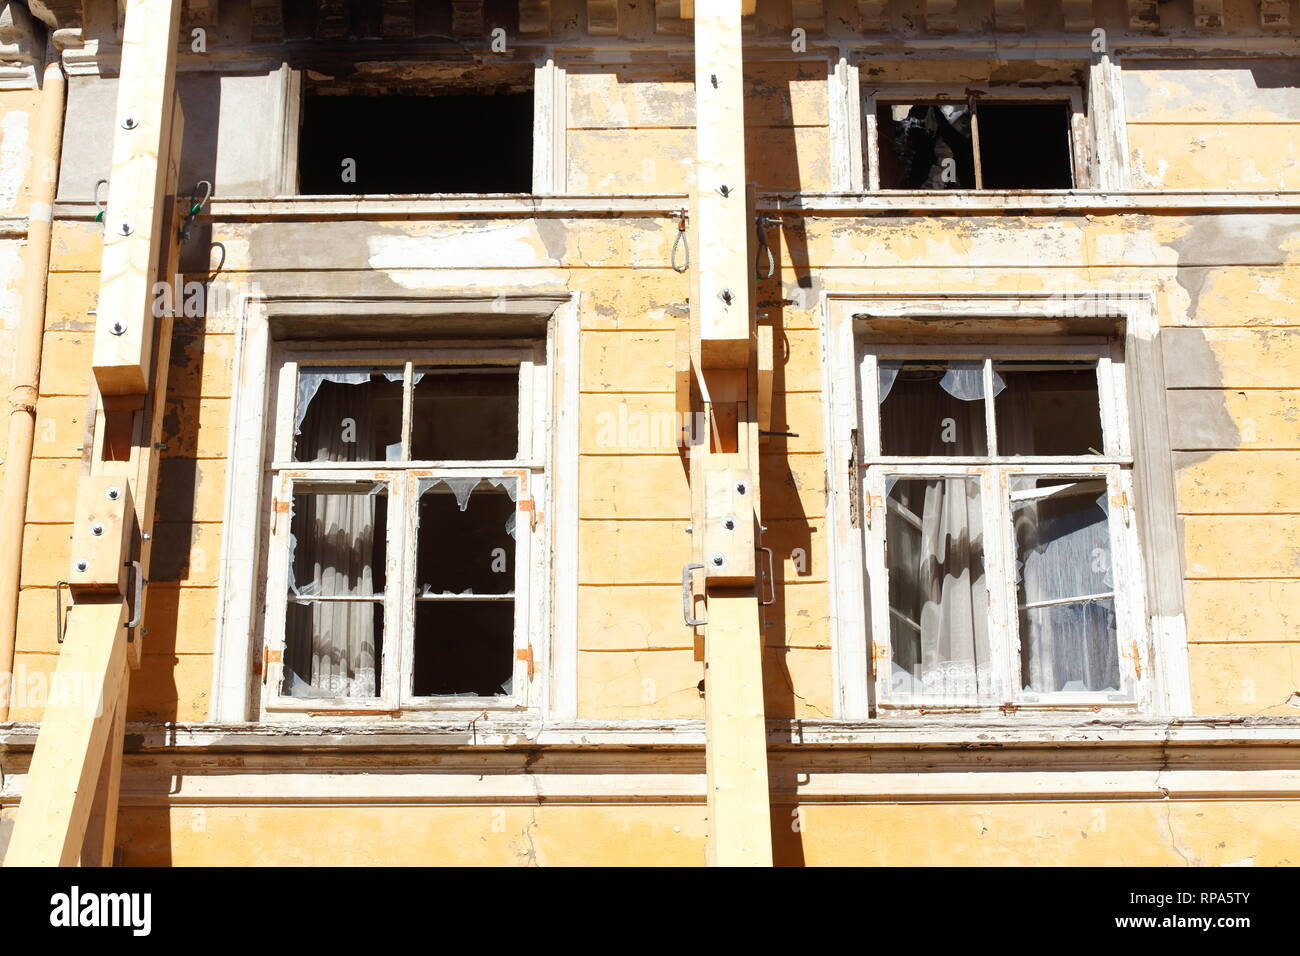 House facade supported by wooden beams, old derelict house, Wismar, Mecklenburg-Vorpommern, Germany, Europe - Stock Image